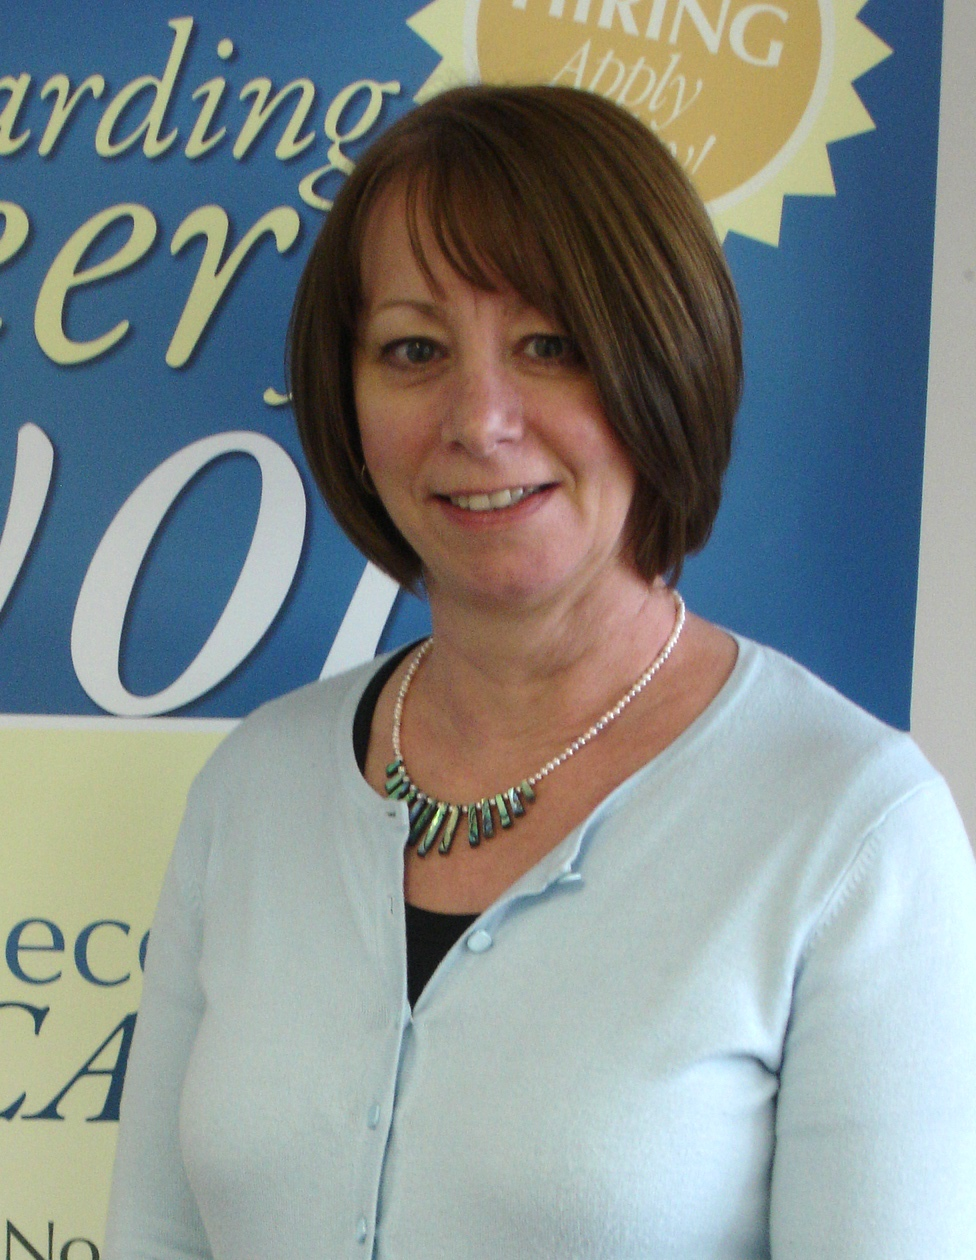 Home Instead Senior Care Barnsley new Community Development Officer, Karen Dennis